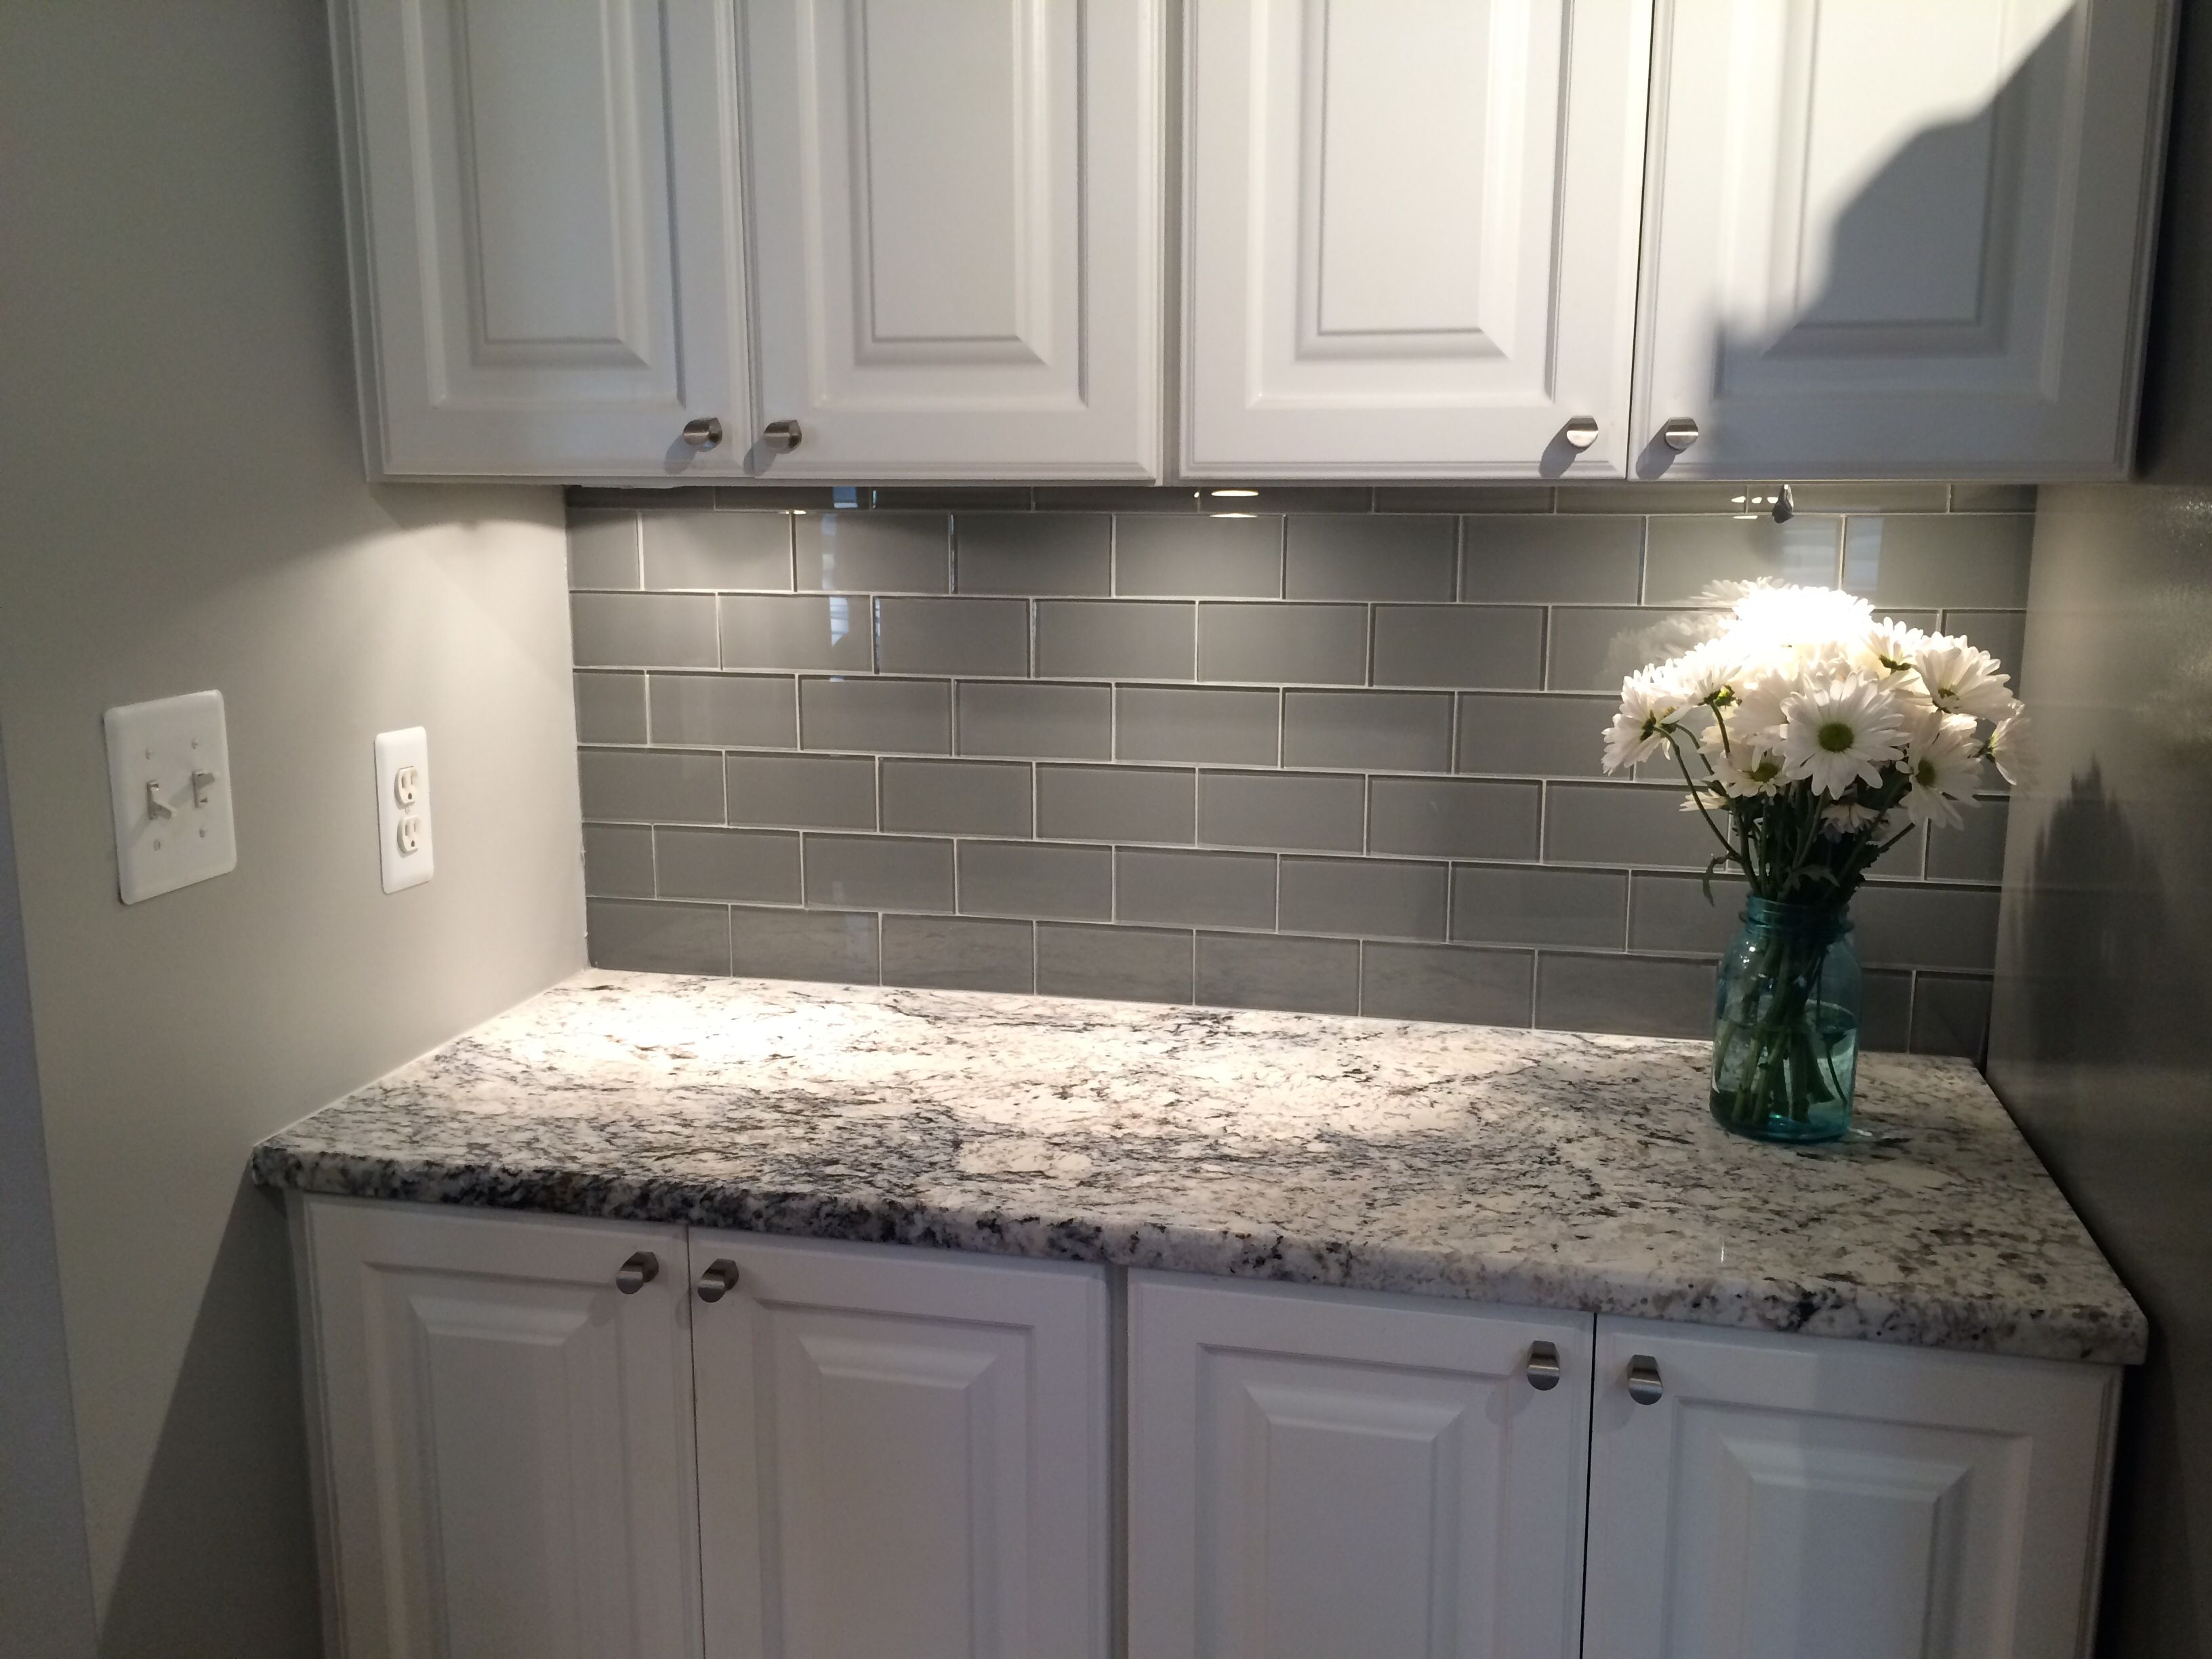 caledonia granite kitchen countertop tile Grey Glass Subway Tile Backsplash And White Cabinet For Small Space